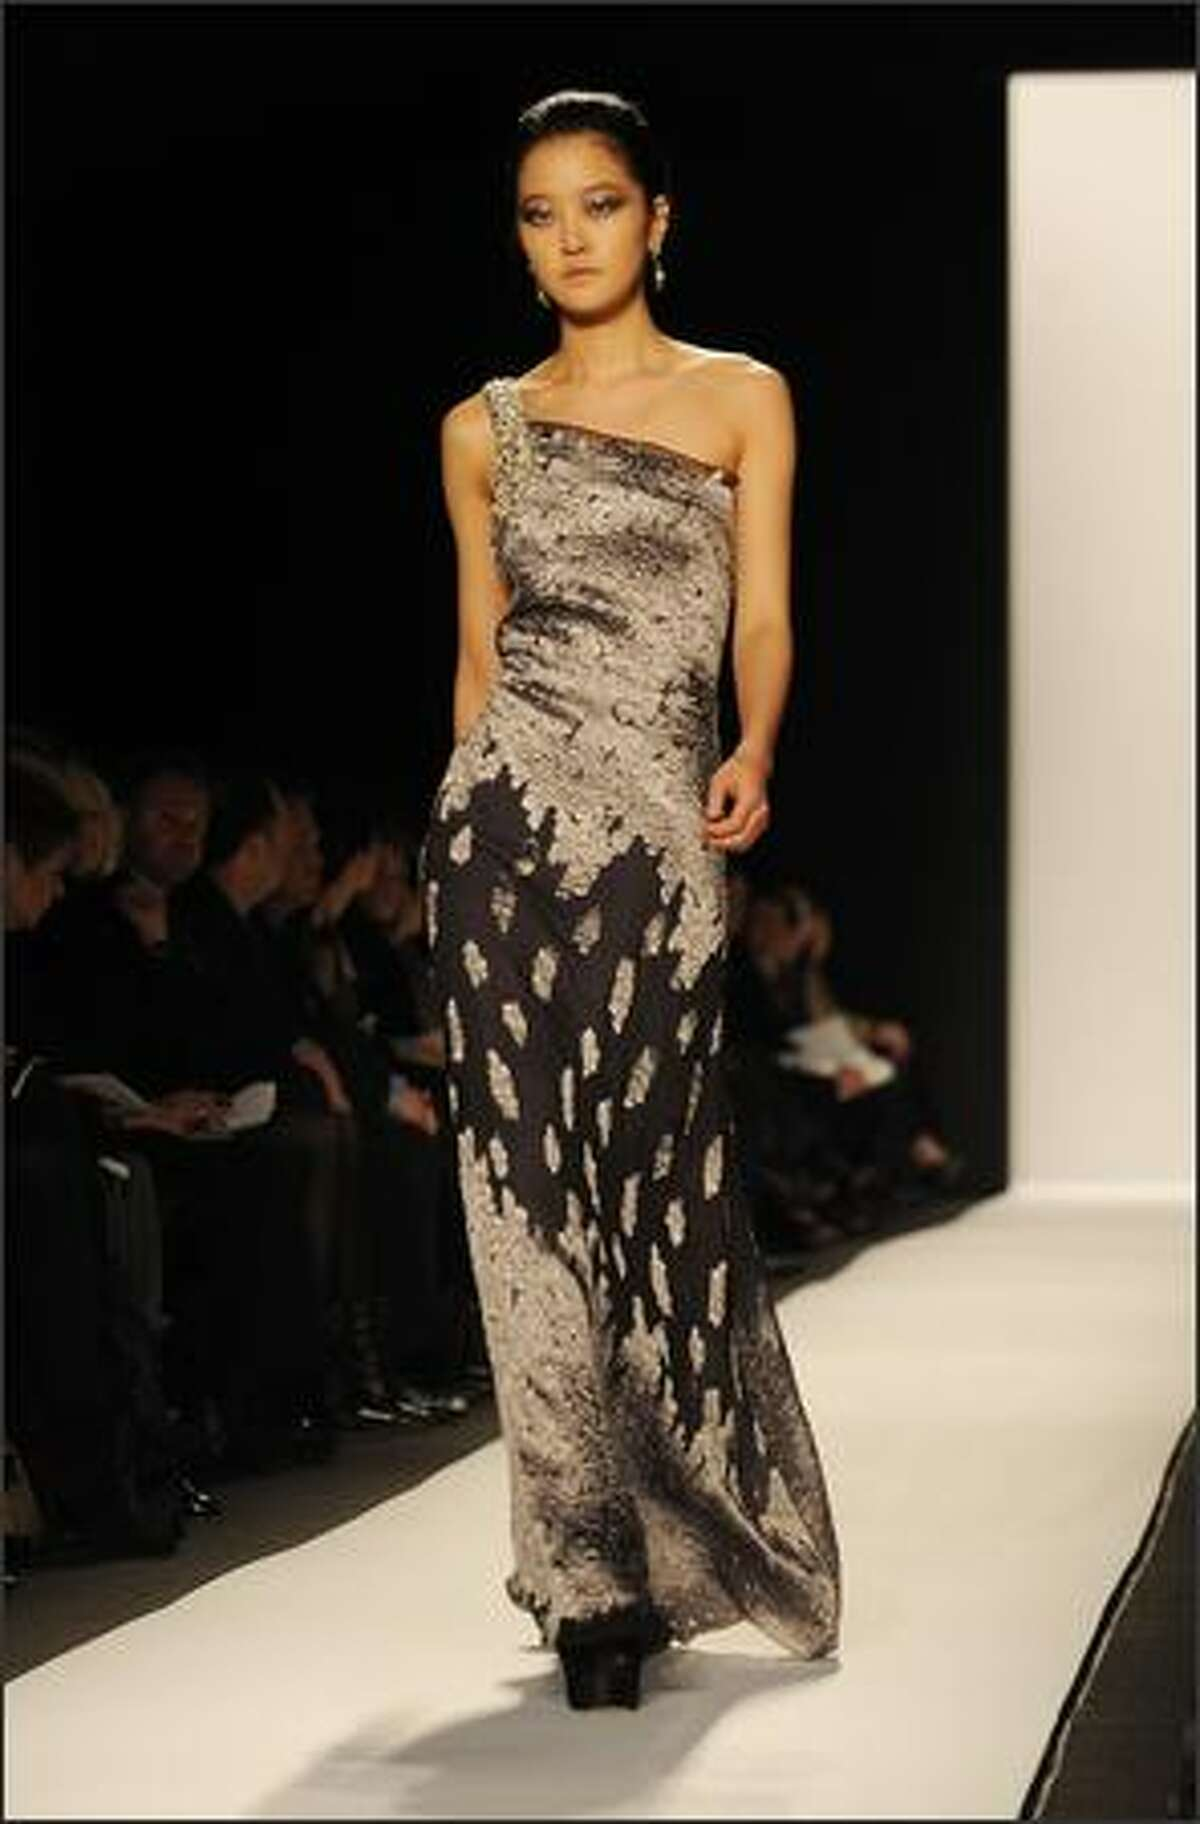 A model presents an outfit by Badgley Mischka February 17, 2009 during the 2009 Mercedes Benz Fashion Week in New York. AFP PHOTO/Stan Honda